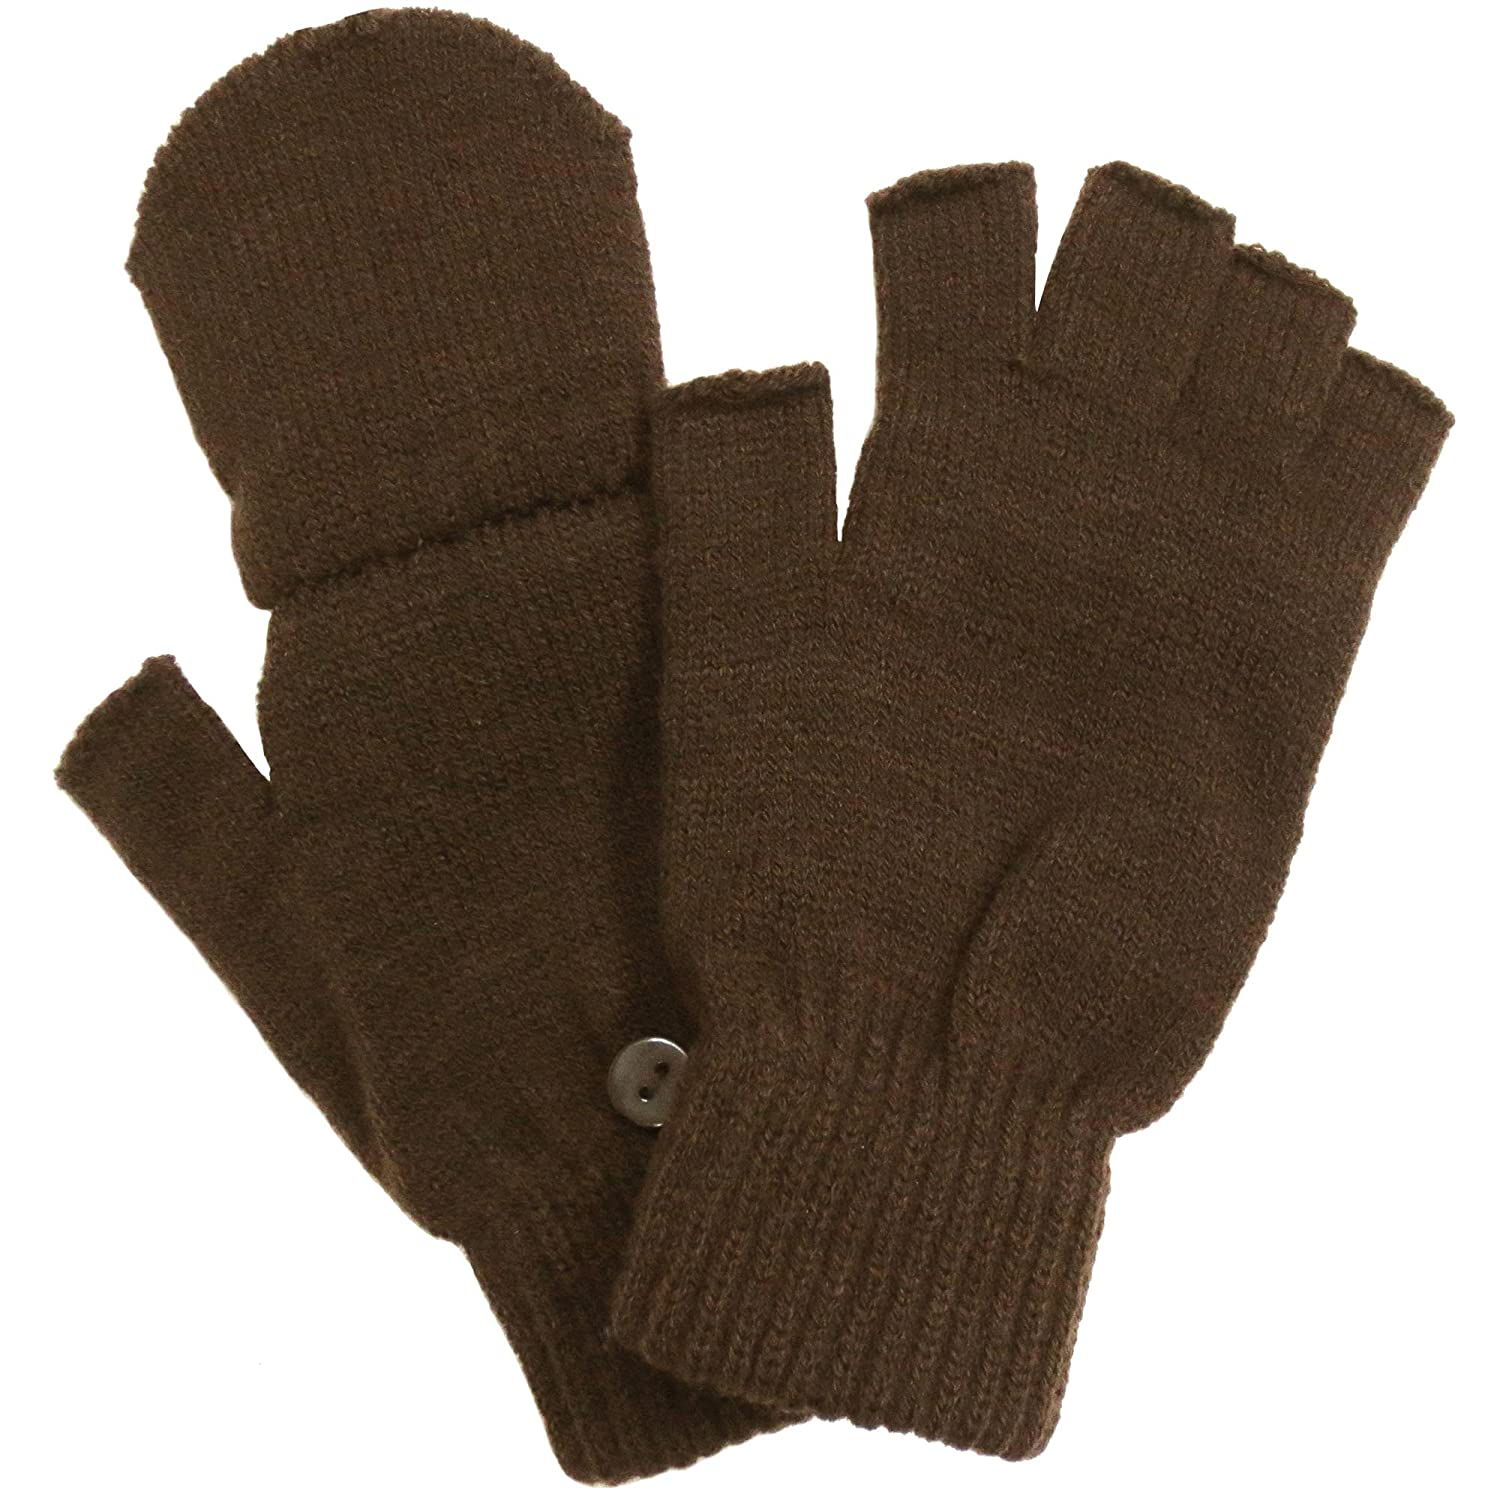 Mens gloves with mitten flap - Amazon Com Winter Fingerless Gloves With Flap Cover Mitten Gloves 56_brown Pet Supplies